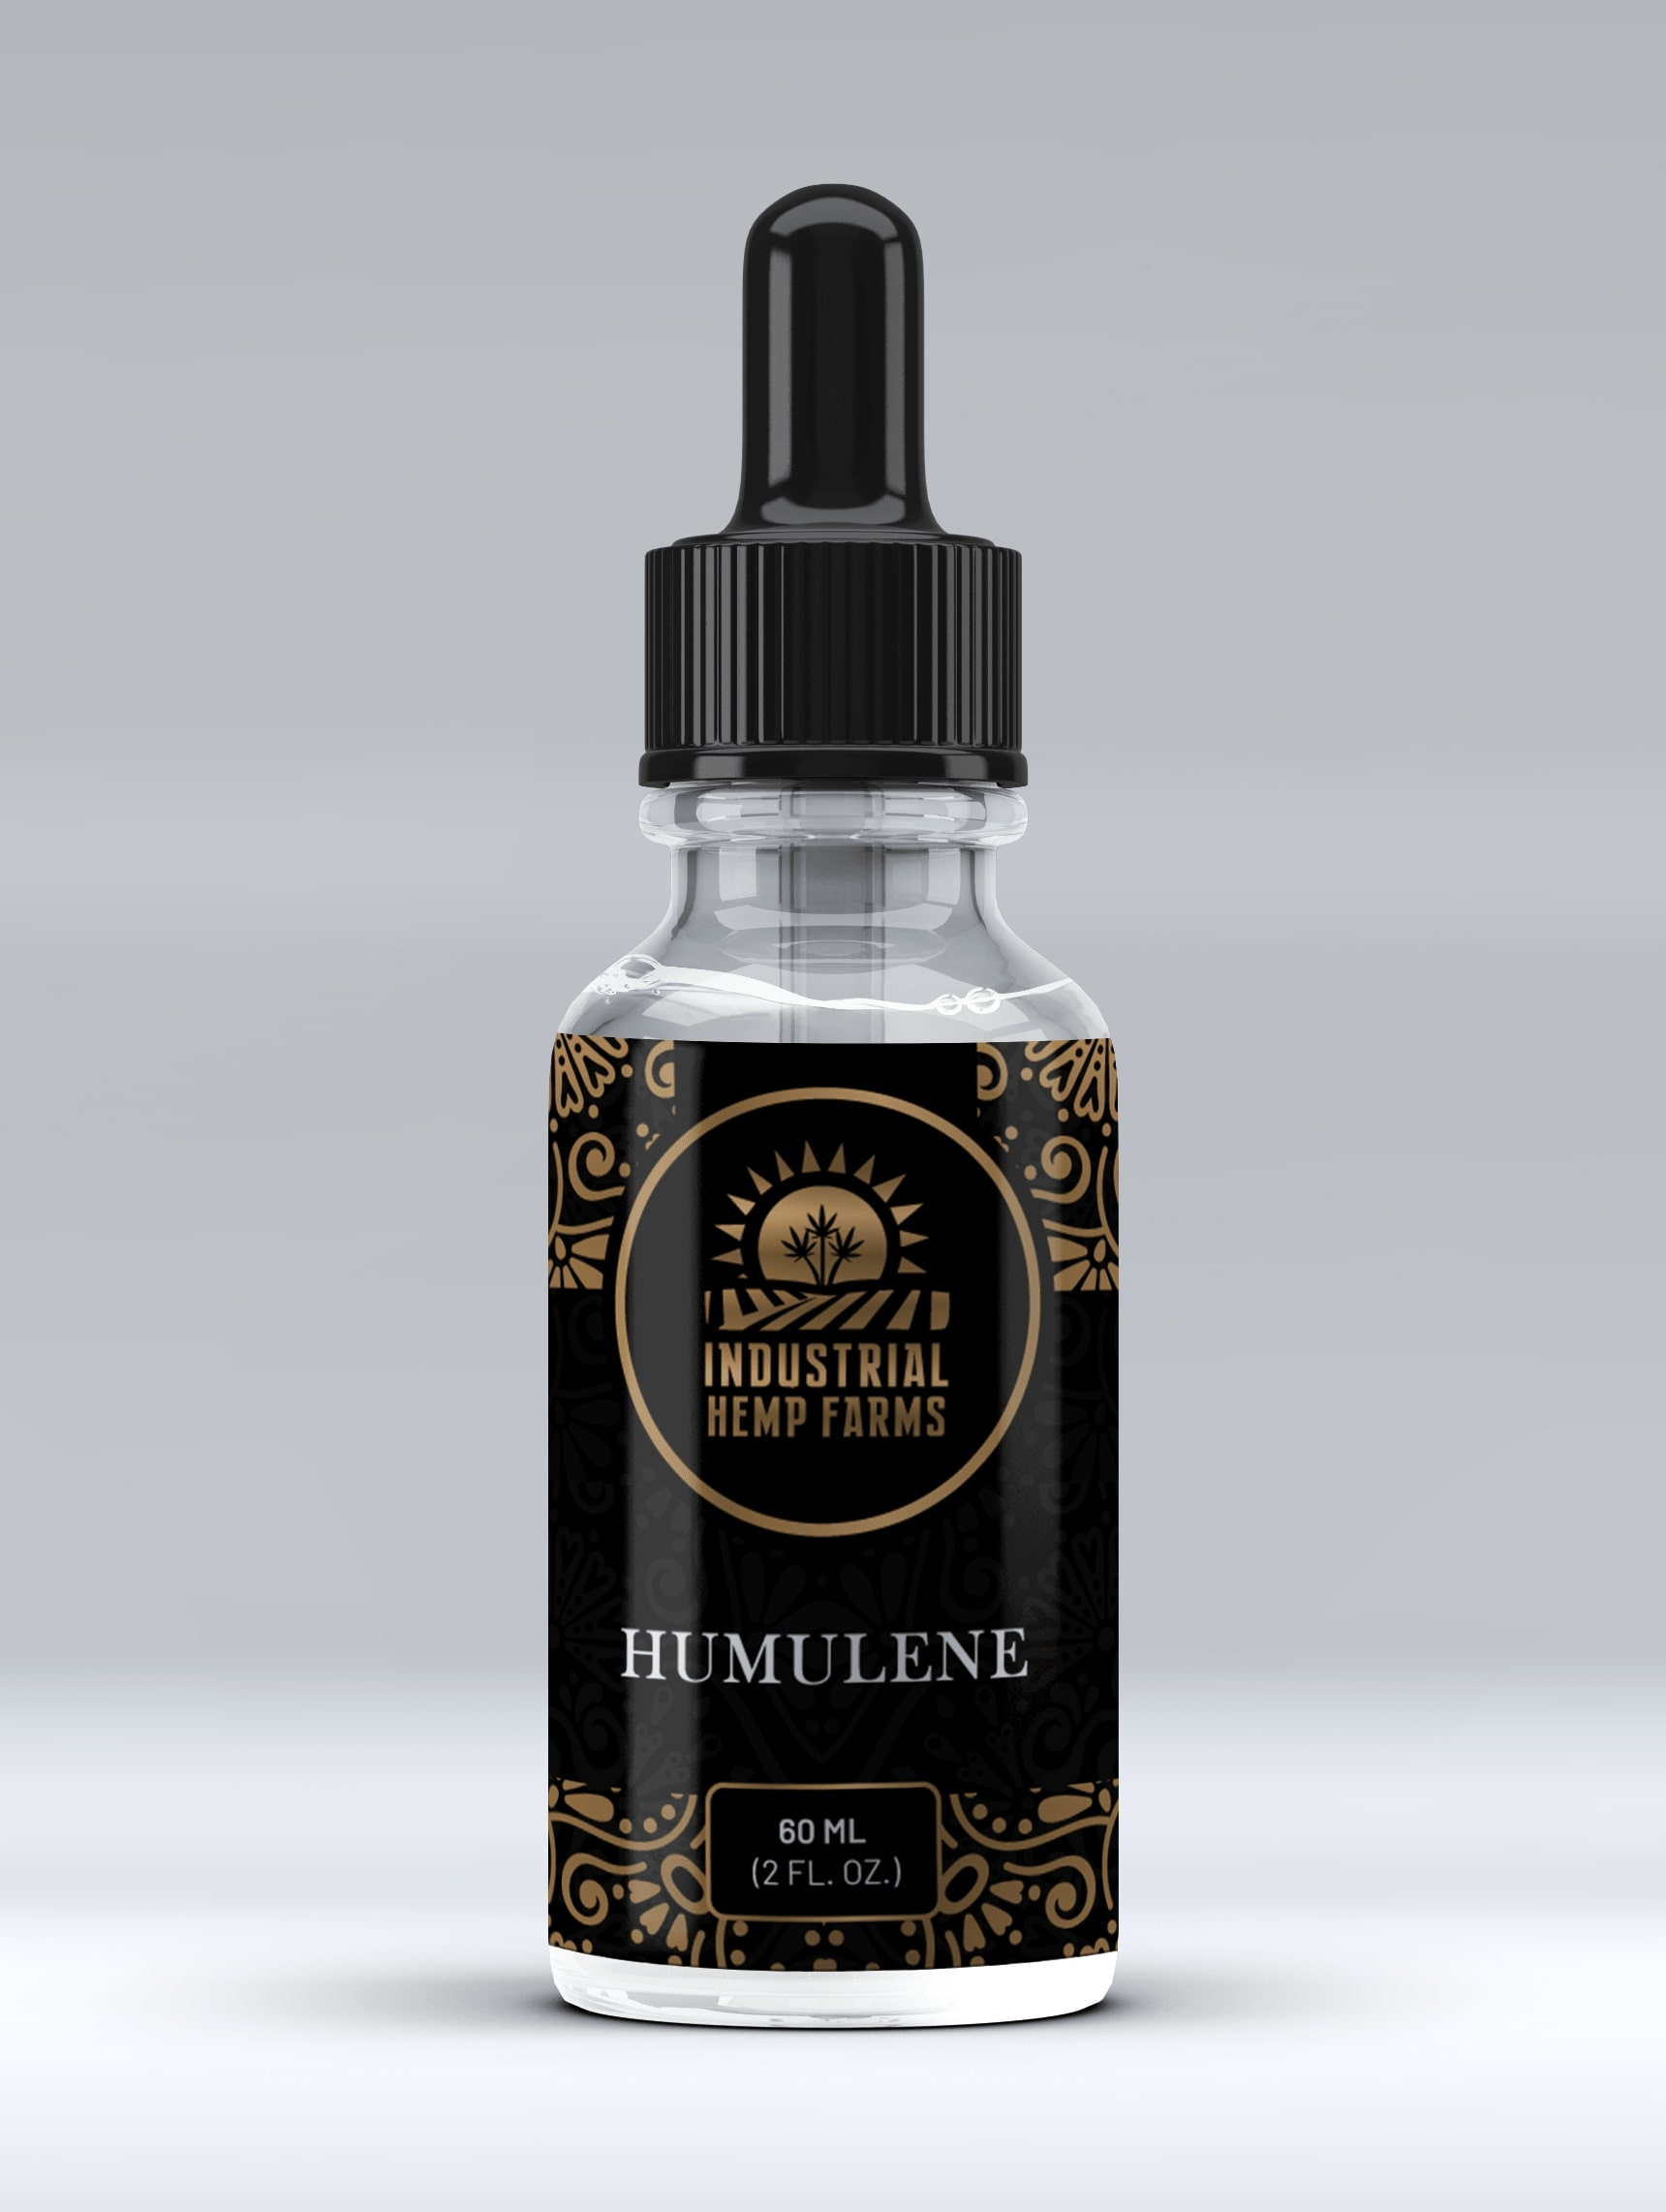 Humulene terpene for sale online